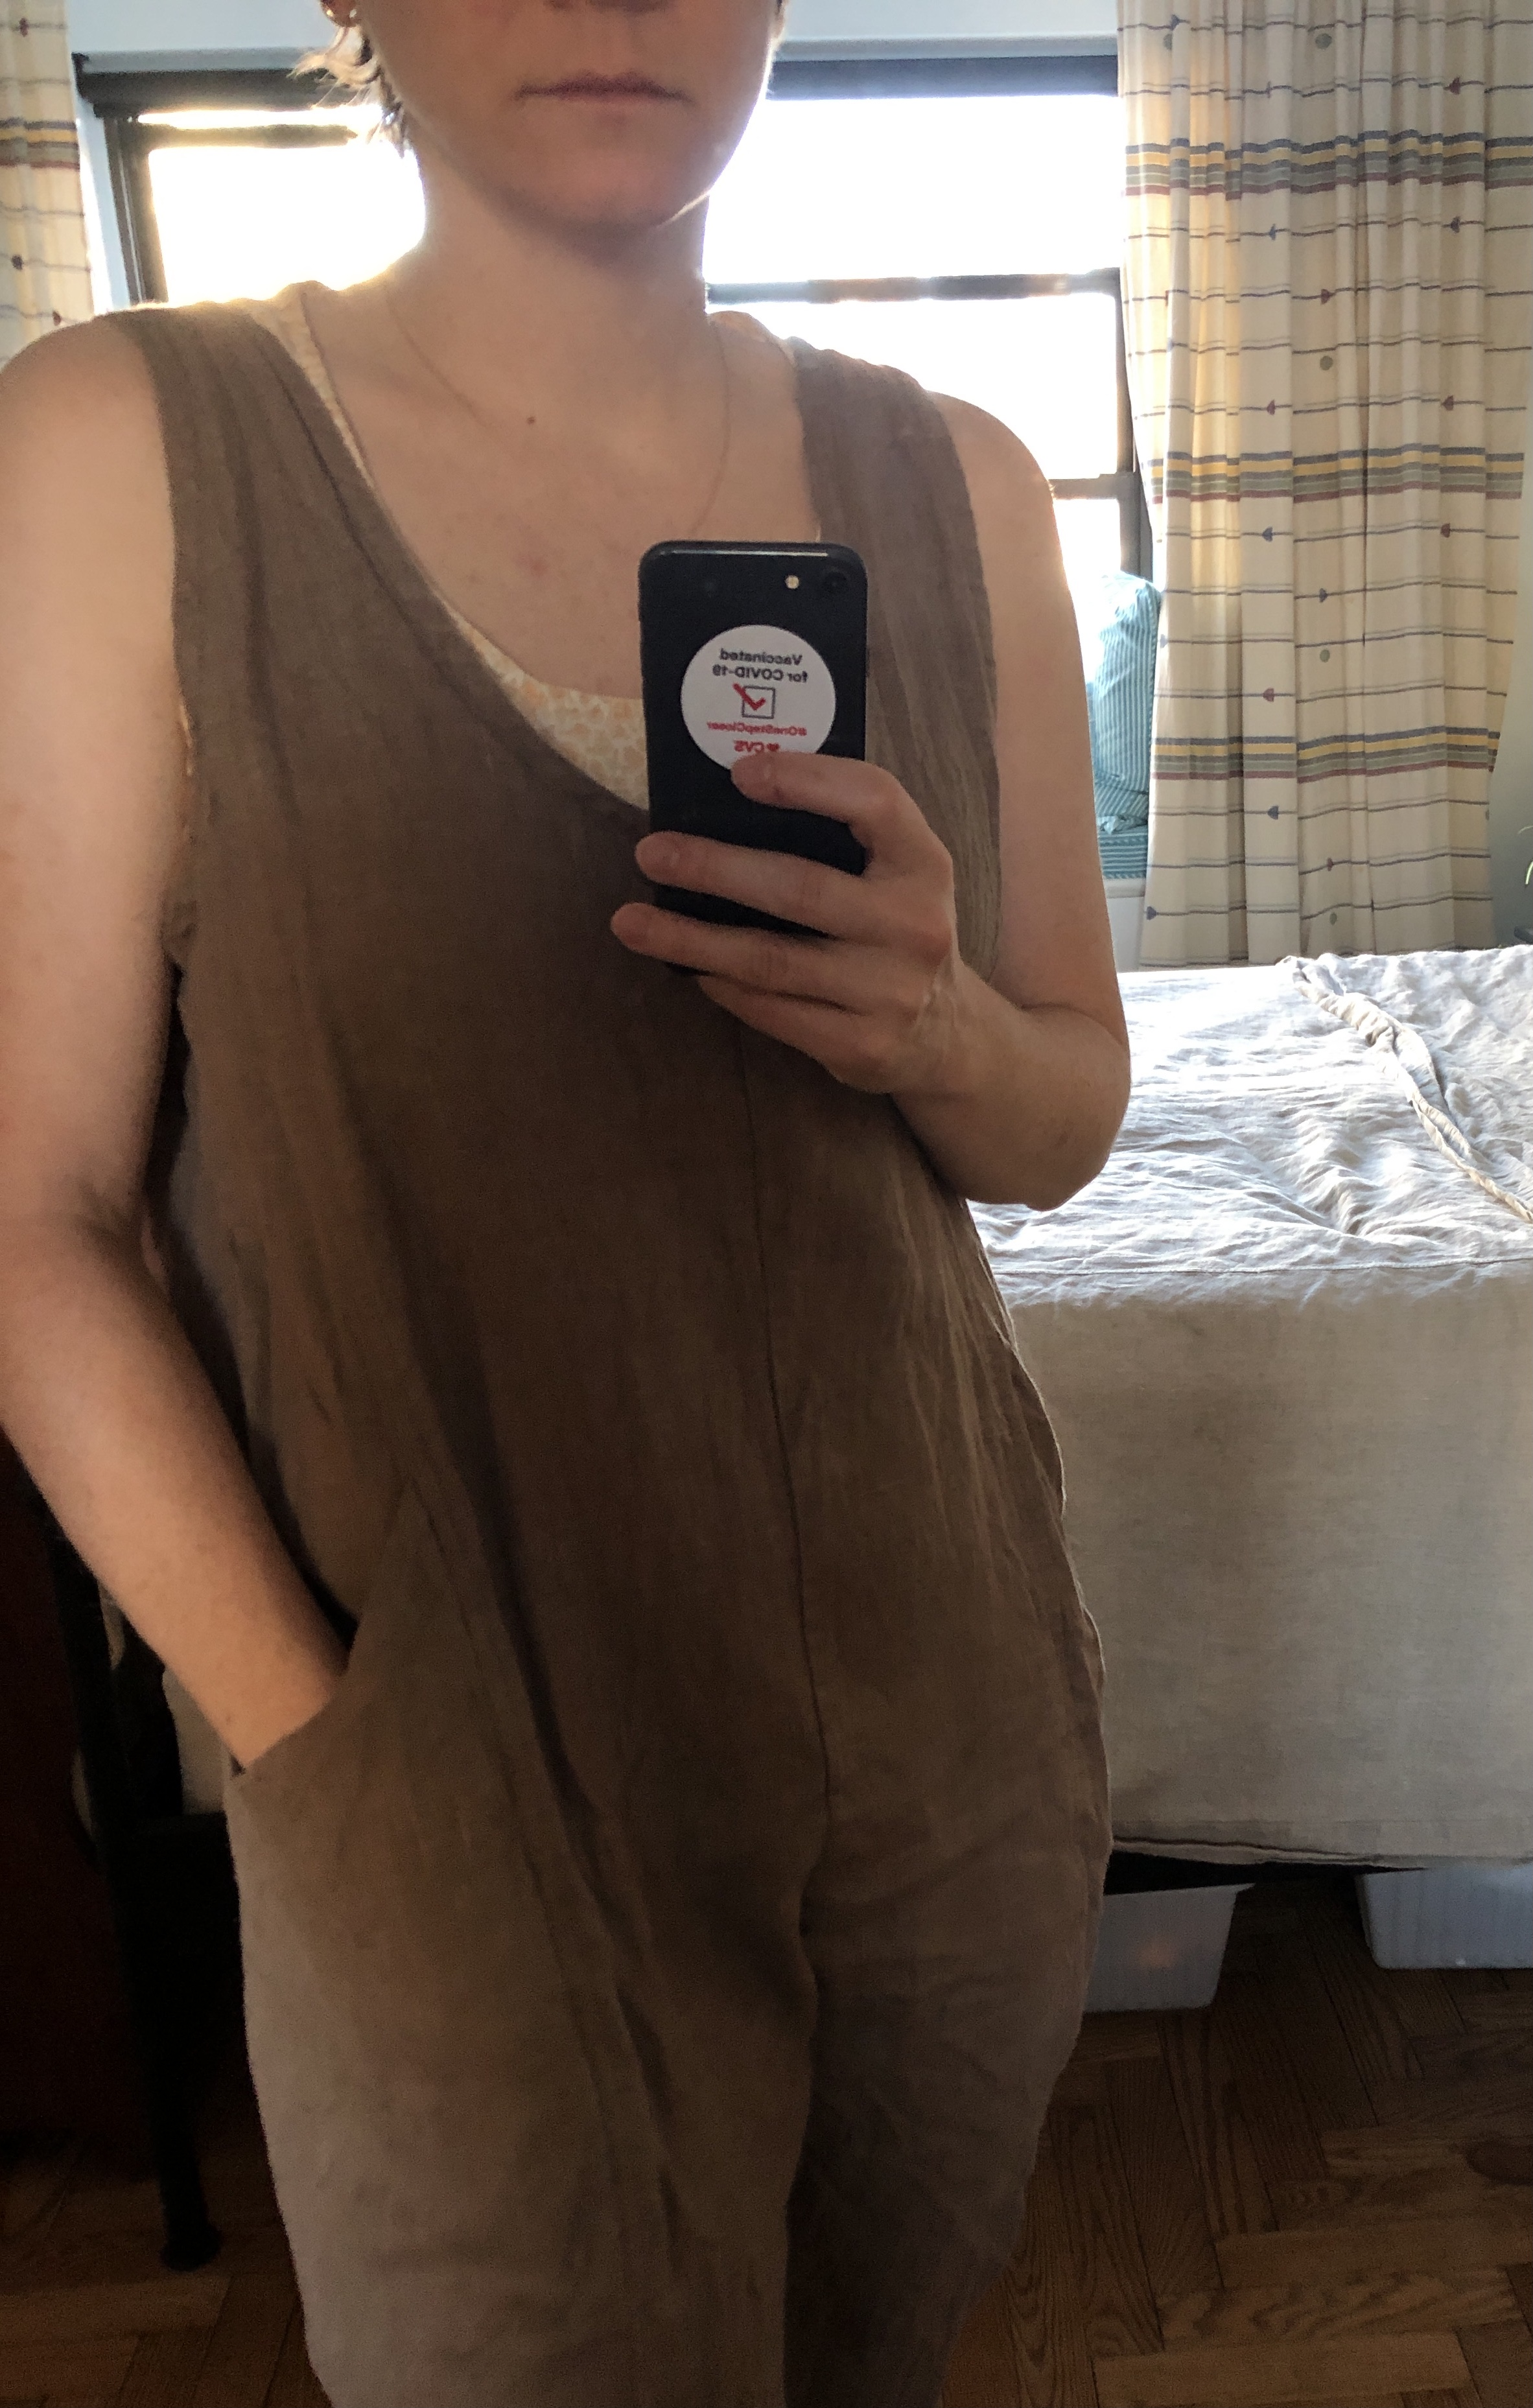 a selfie of a woman wearing a homemade jumpsuit